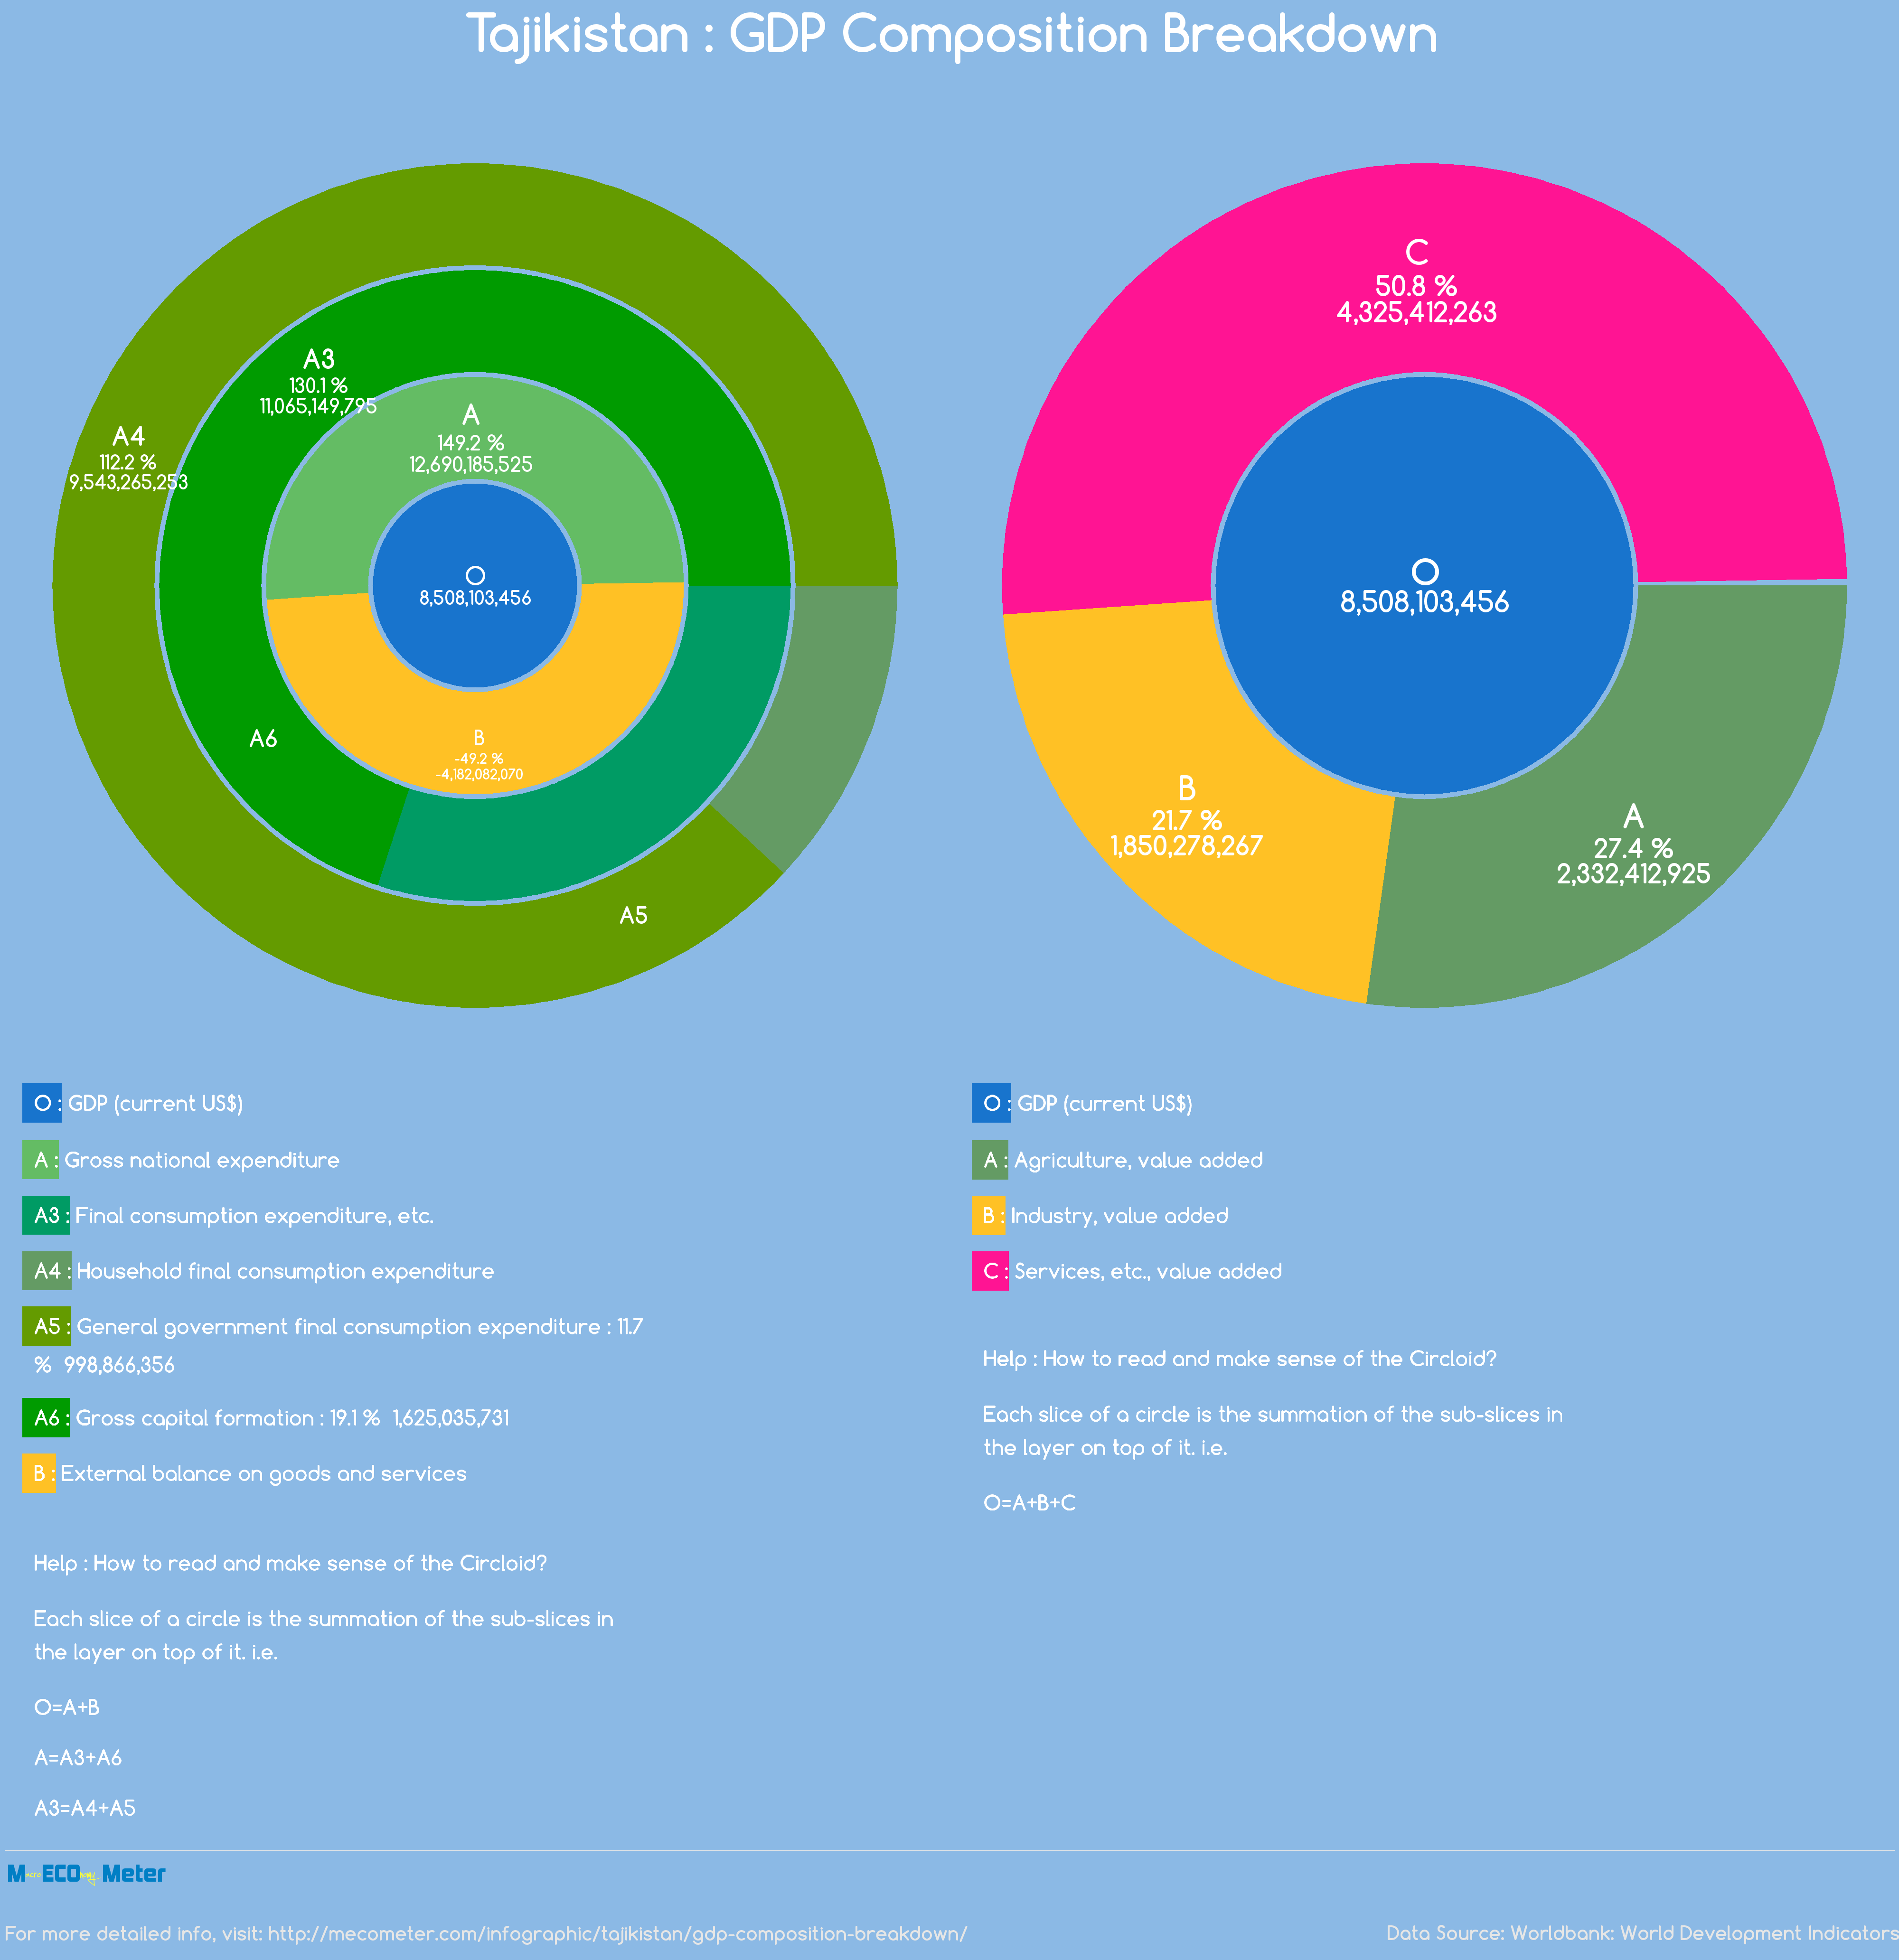 Tajikistan : GDP Composition Breakdown